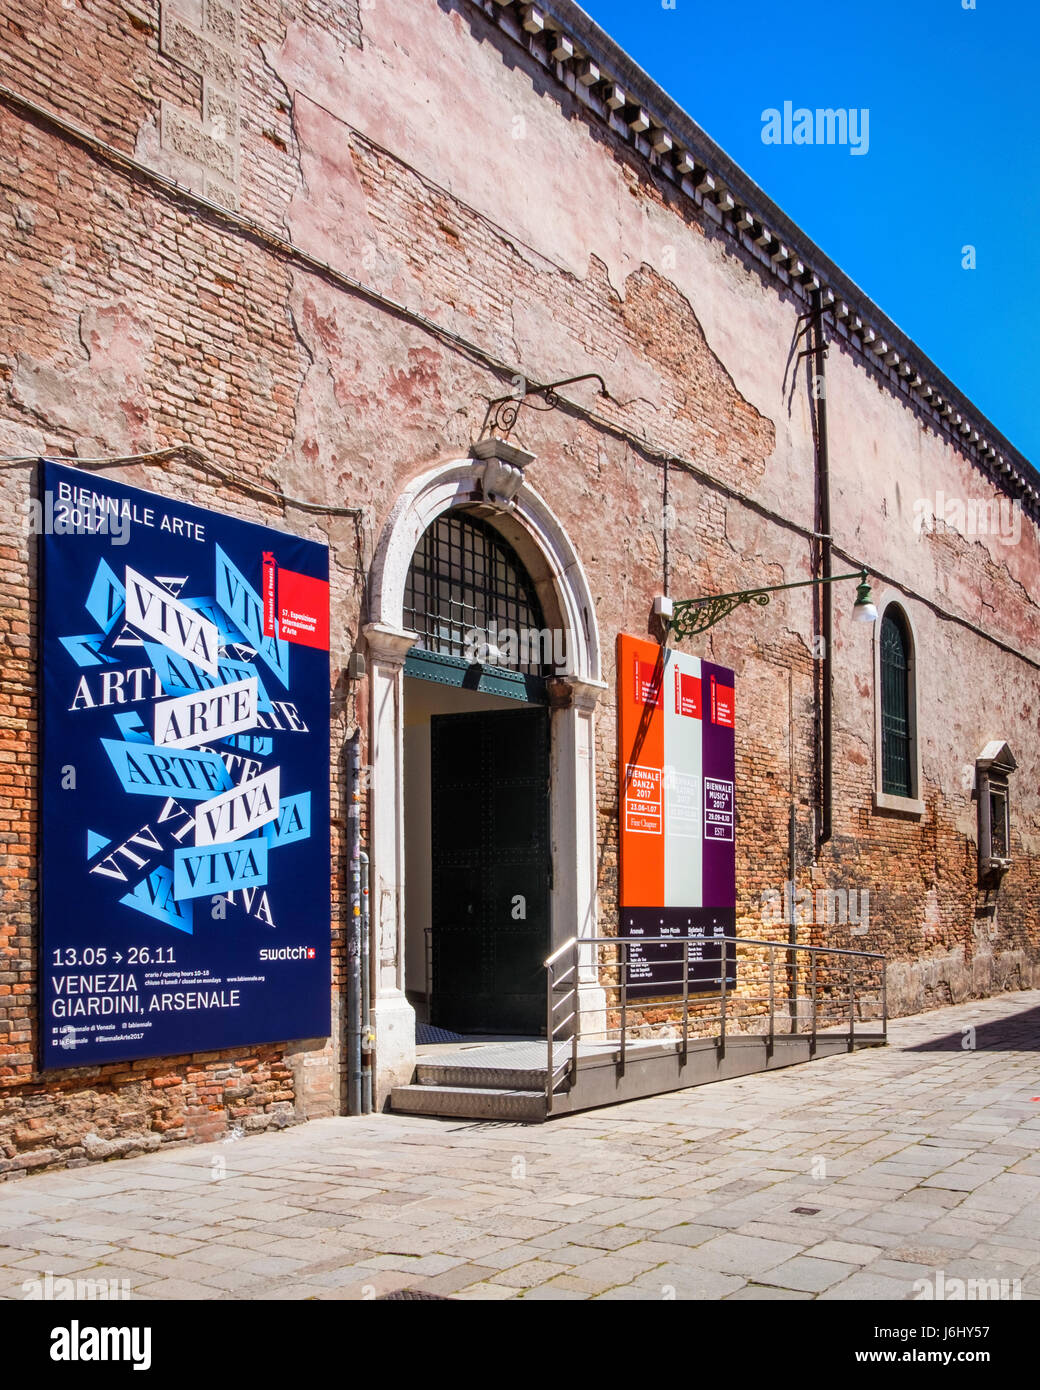 Venice,Castello,Arsenale. 57th Venice Biennale 2017,La Biennale di Venezia. Exhibition entrance - Stock Image